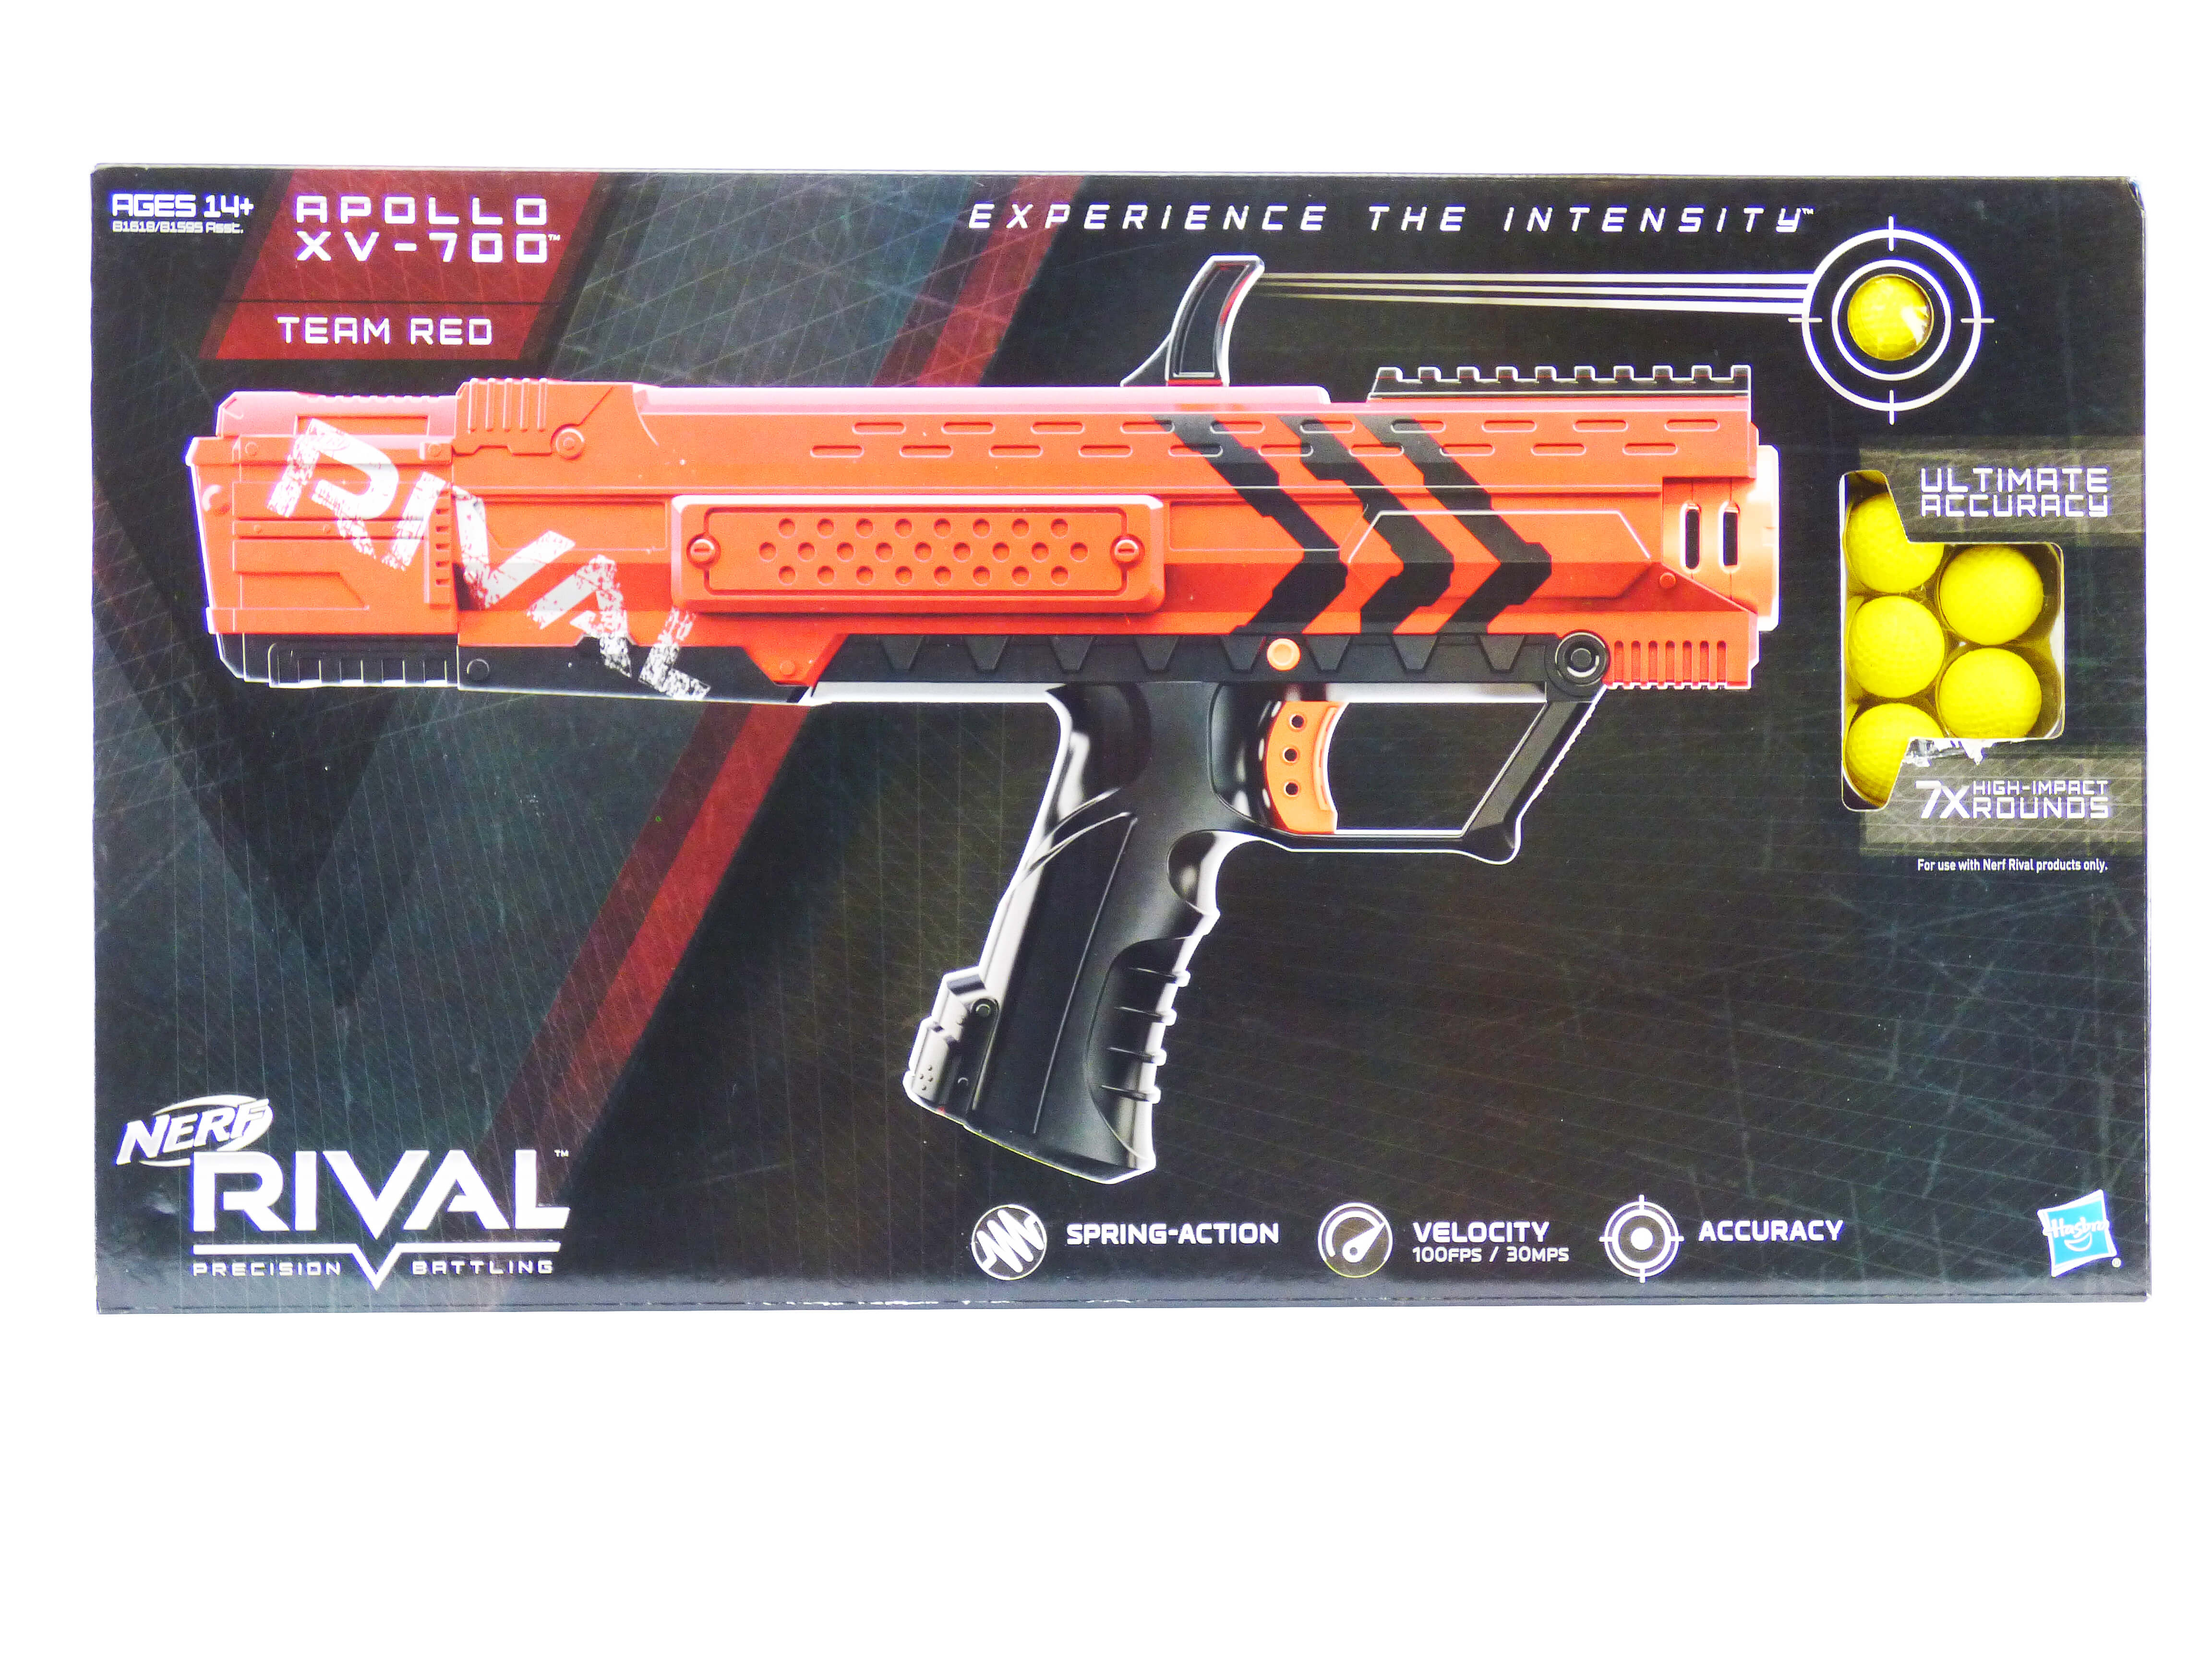 ... Nerf pollo XV-700 Blaster Red ...